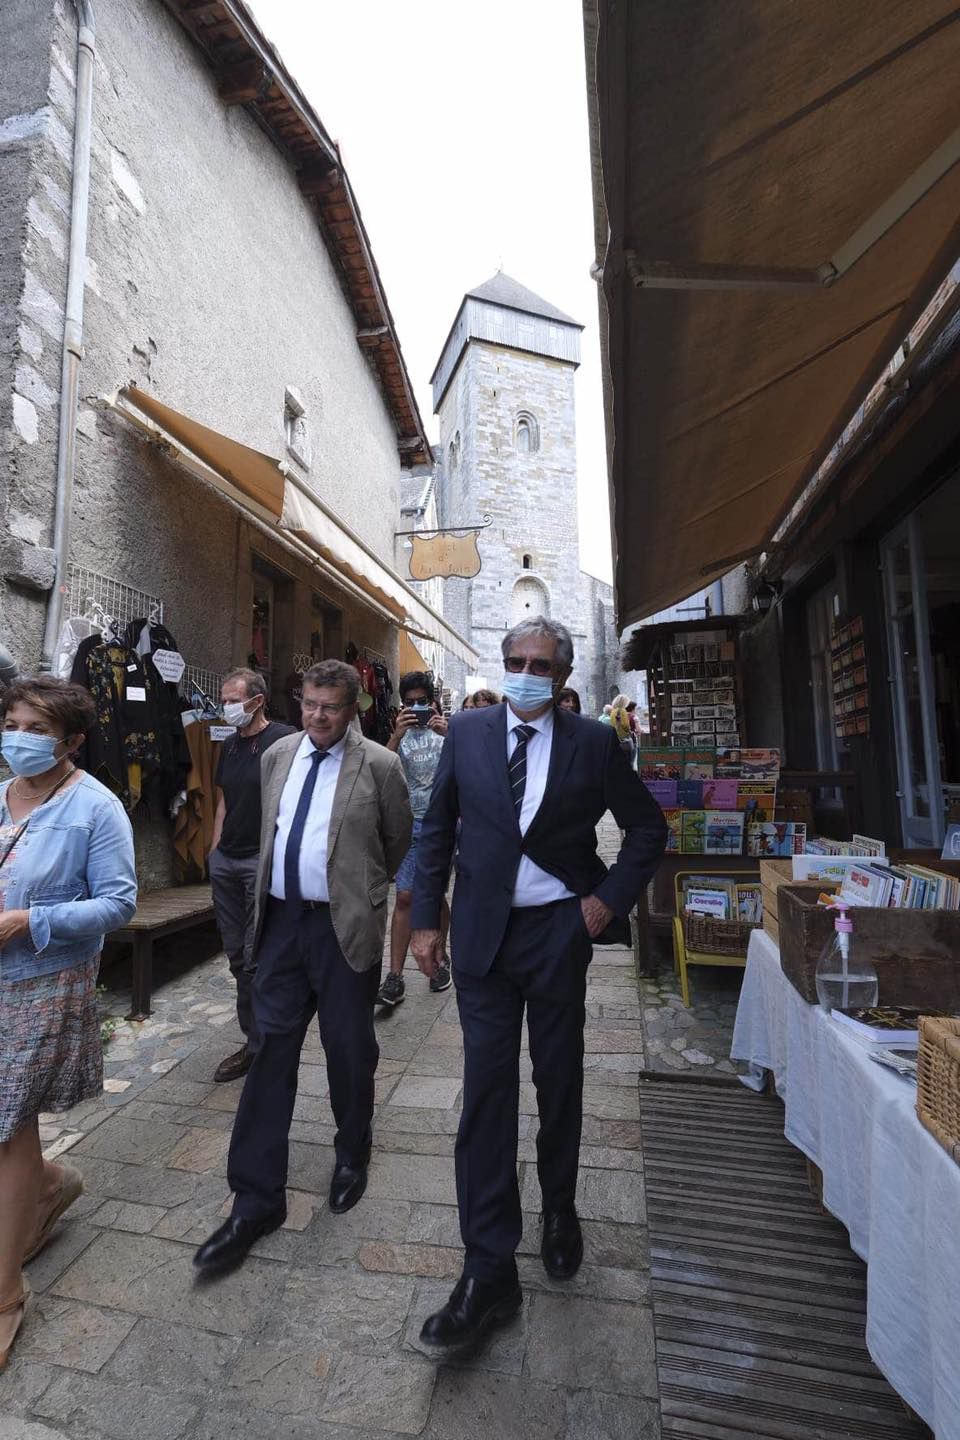 Georges Méric et Patrice Rival dans les rues de Saint-Bertrand-de-Comminges (Photo : Facebook @Georges Méric)